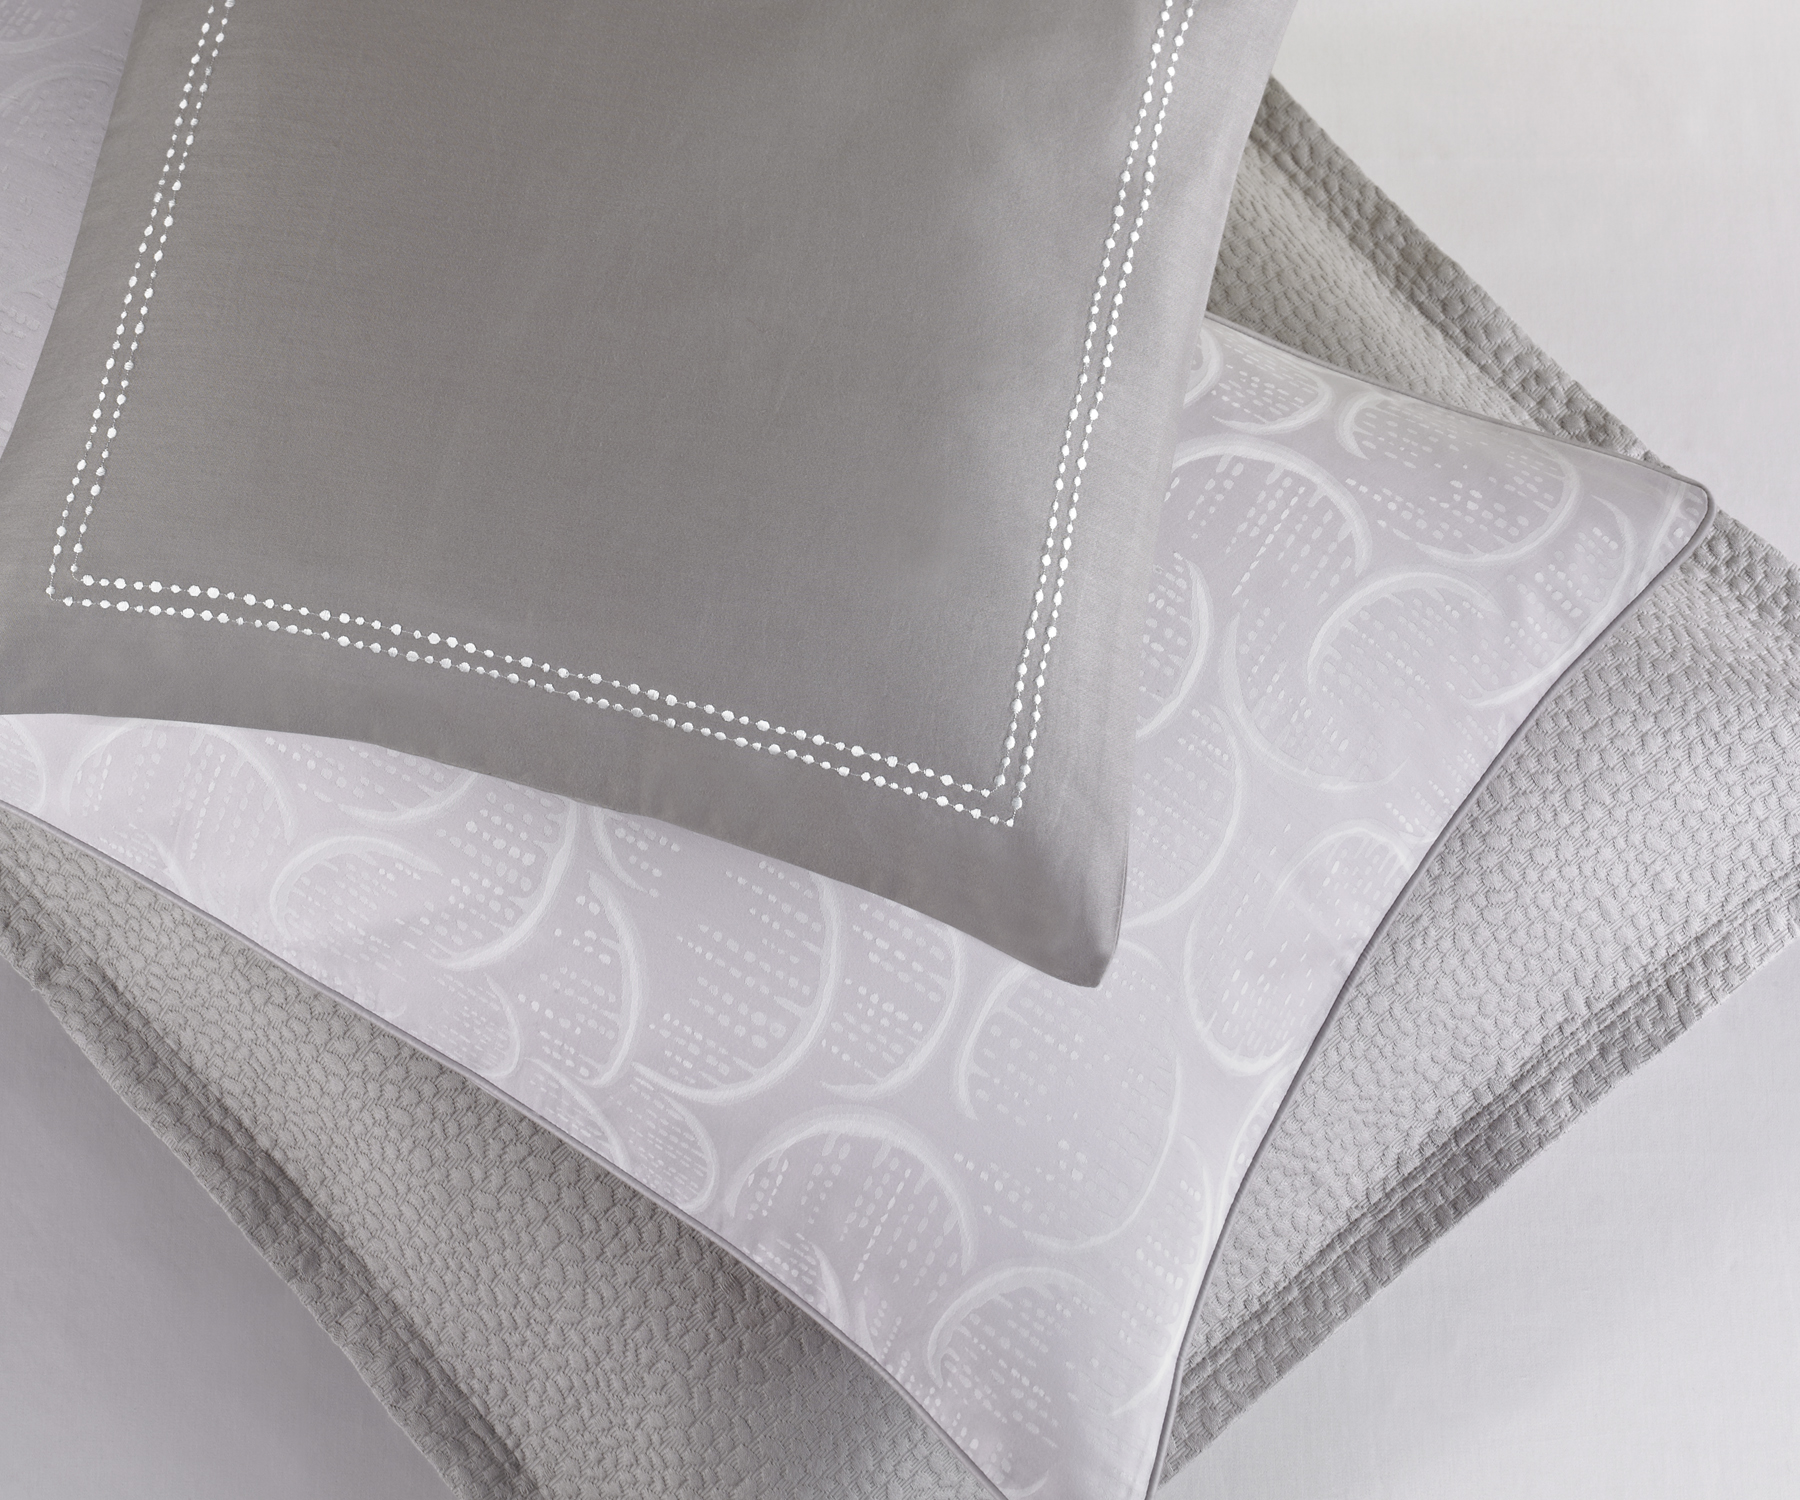 Pillows from DIVINE, the new Barbara Barry Dream collection for Spring 2012.  Photo credit:  Courtesy of Barbara Barry Inc.